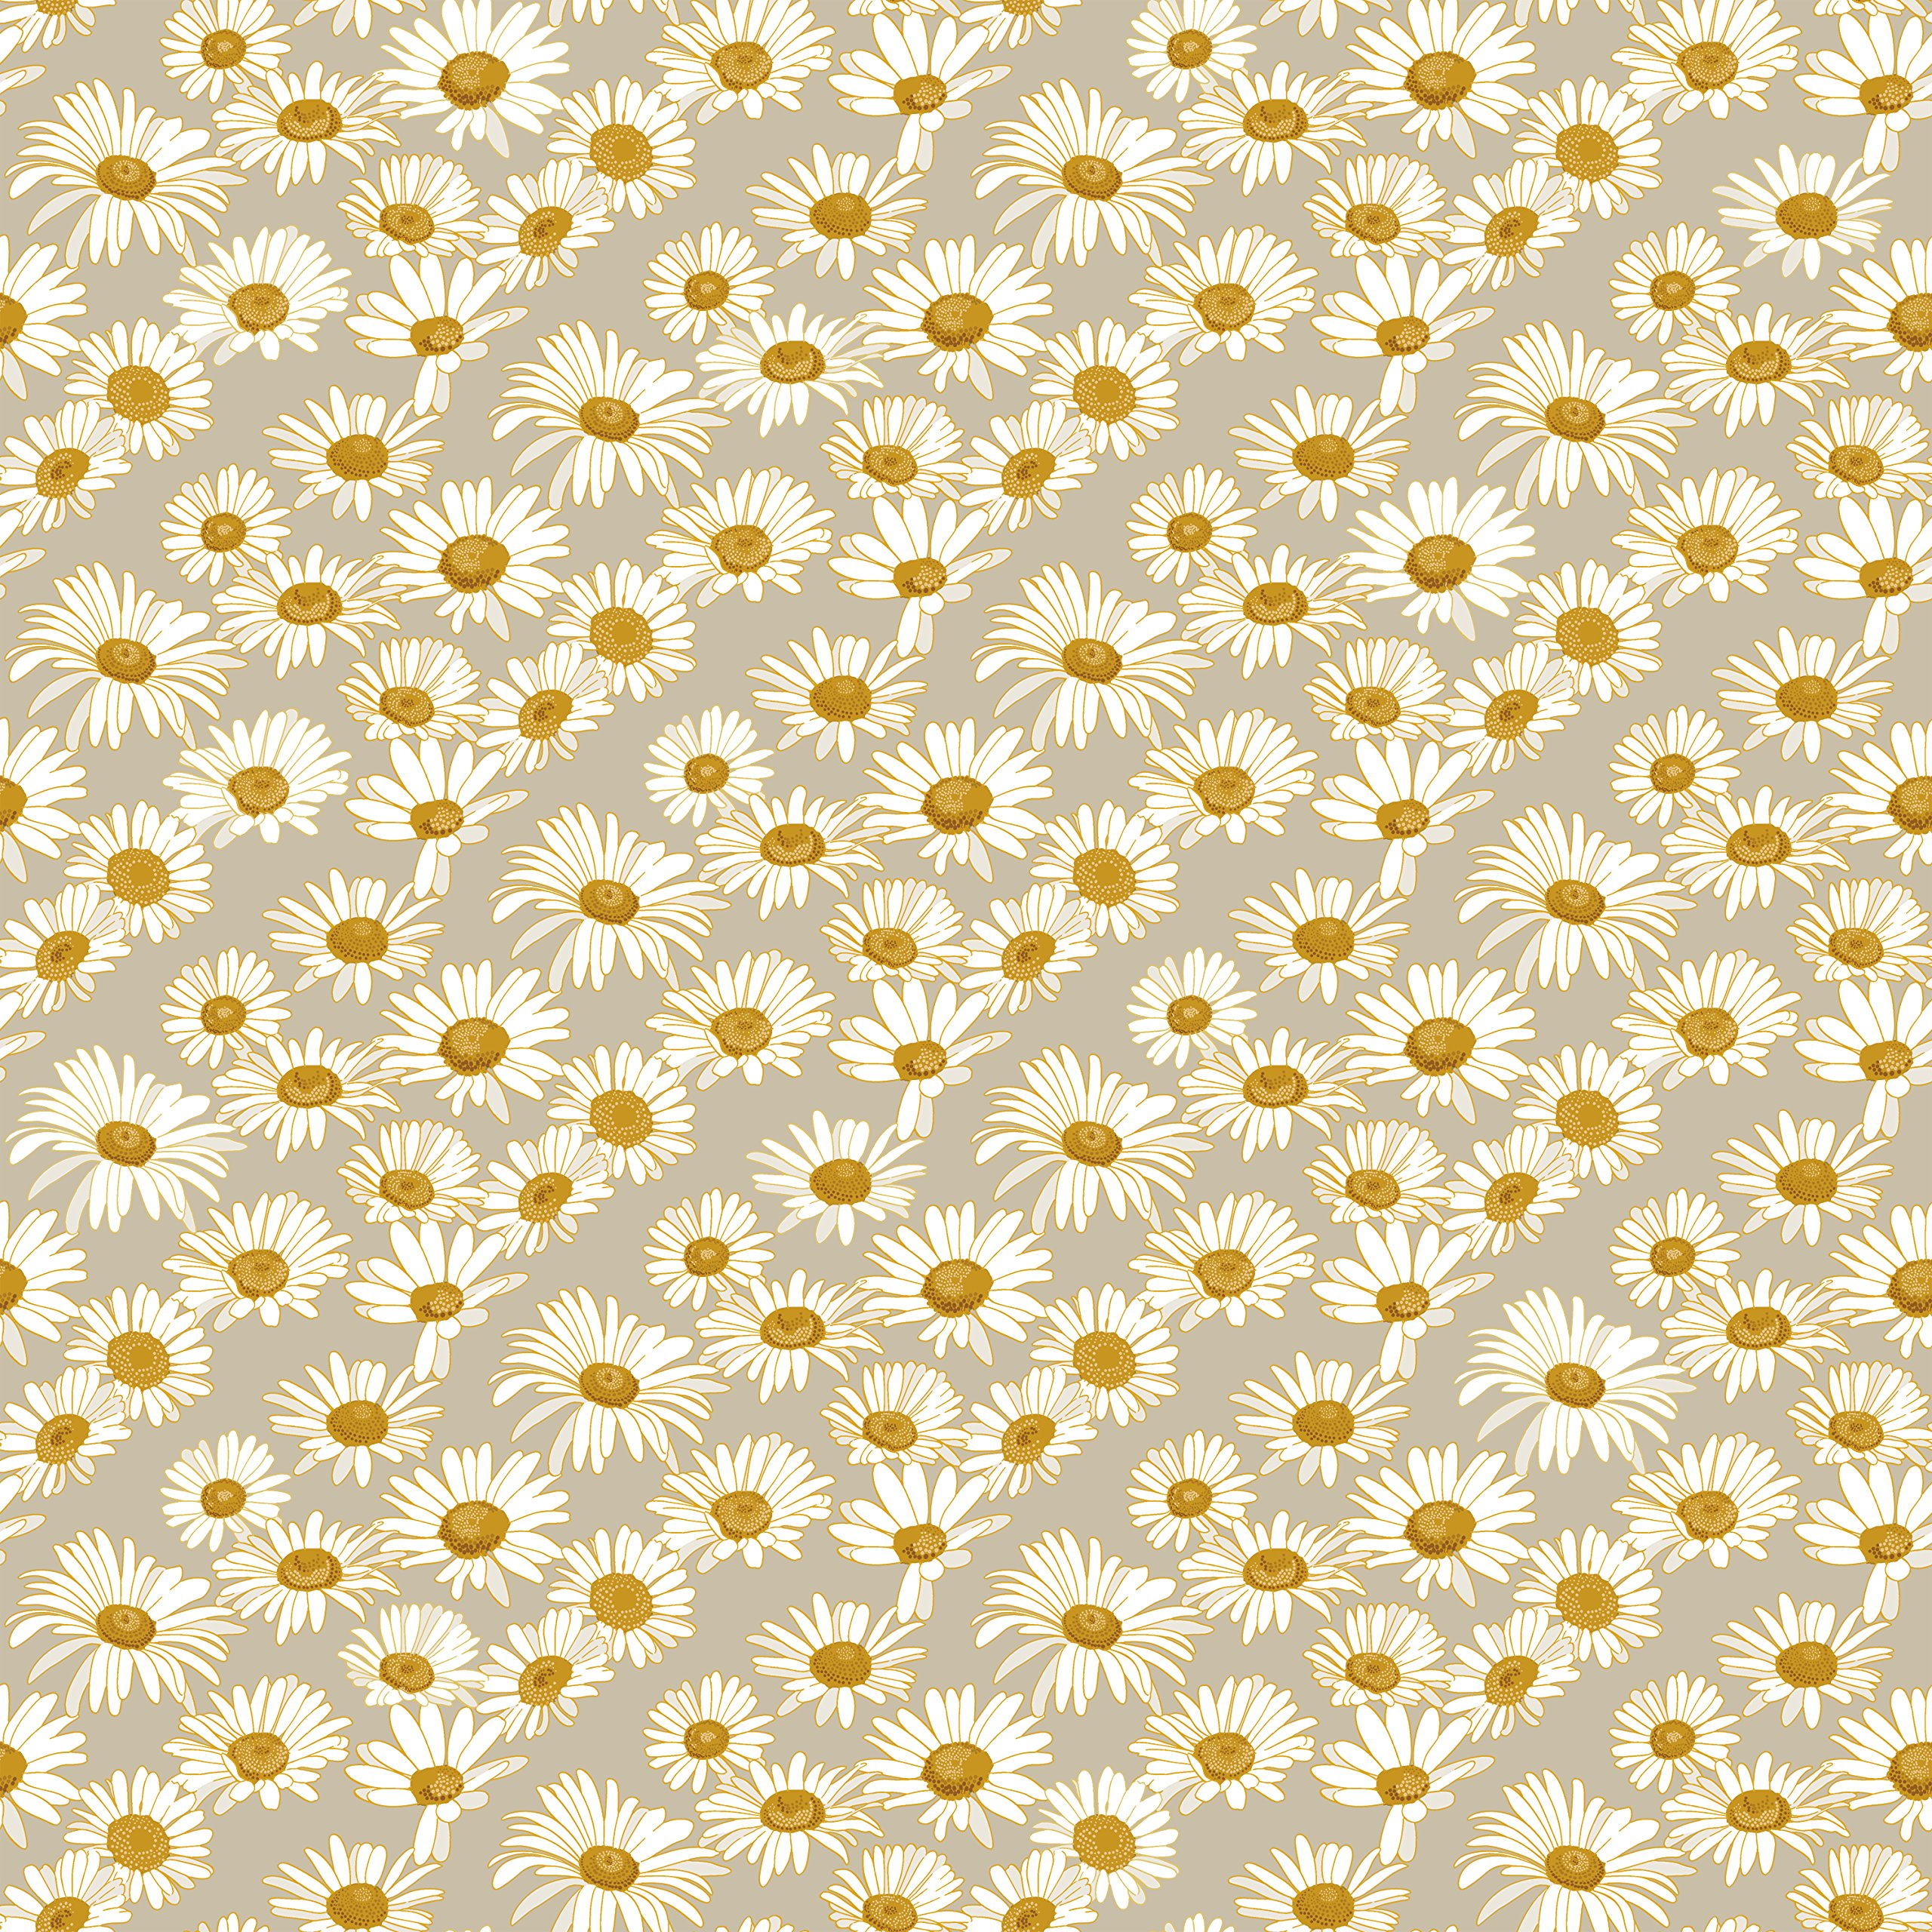 Novogratz DA477 Daisies Removable Wallpaper, 20.5'' W x 16.5' L = 28 sq.', Griege by Novogratz